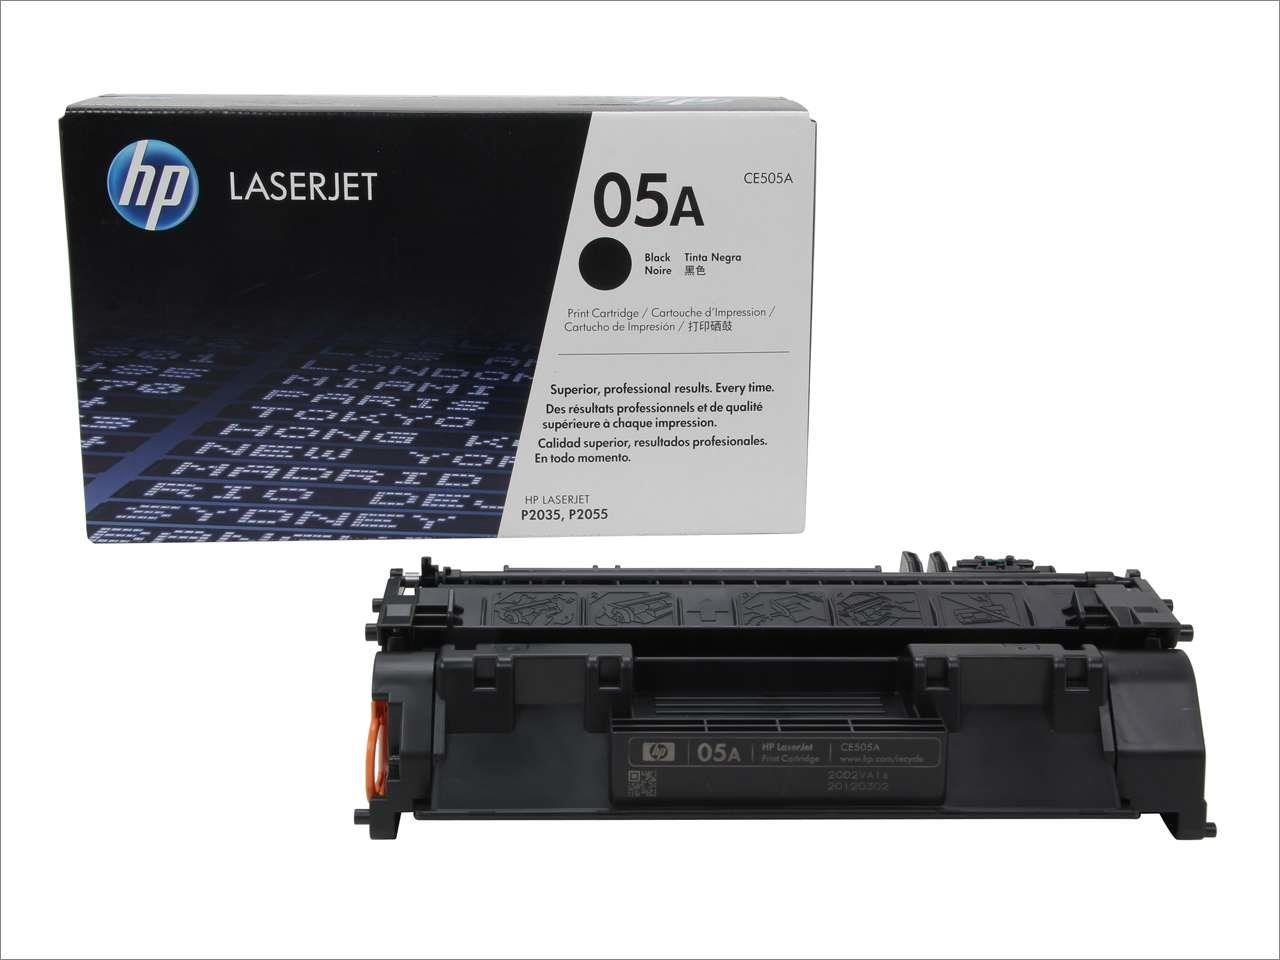 05a cartridge